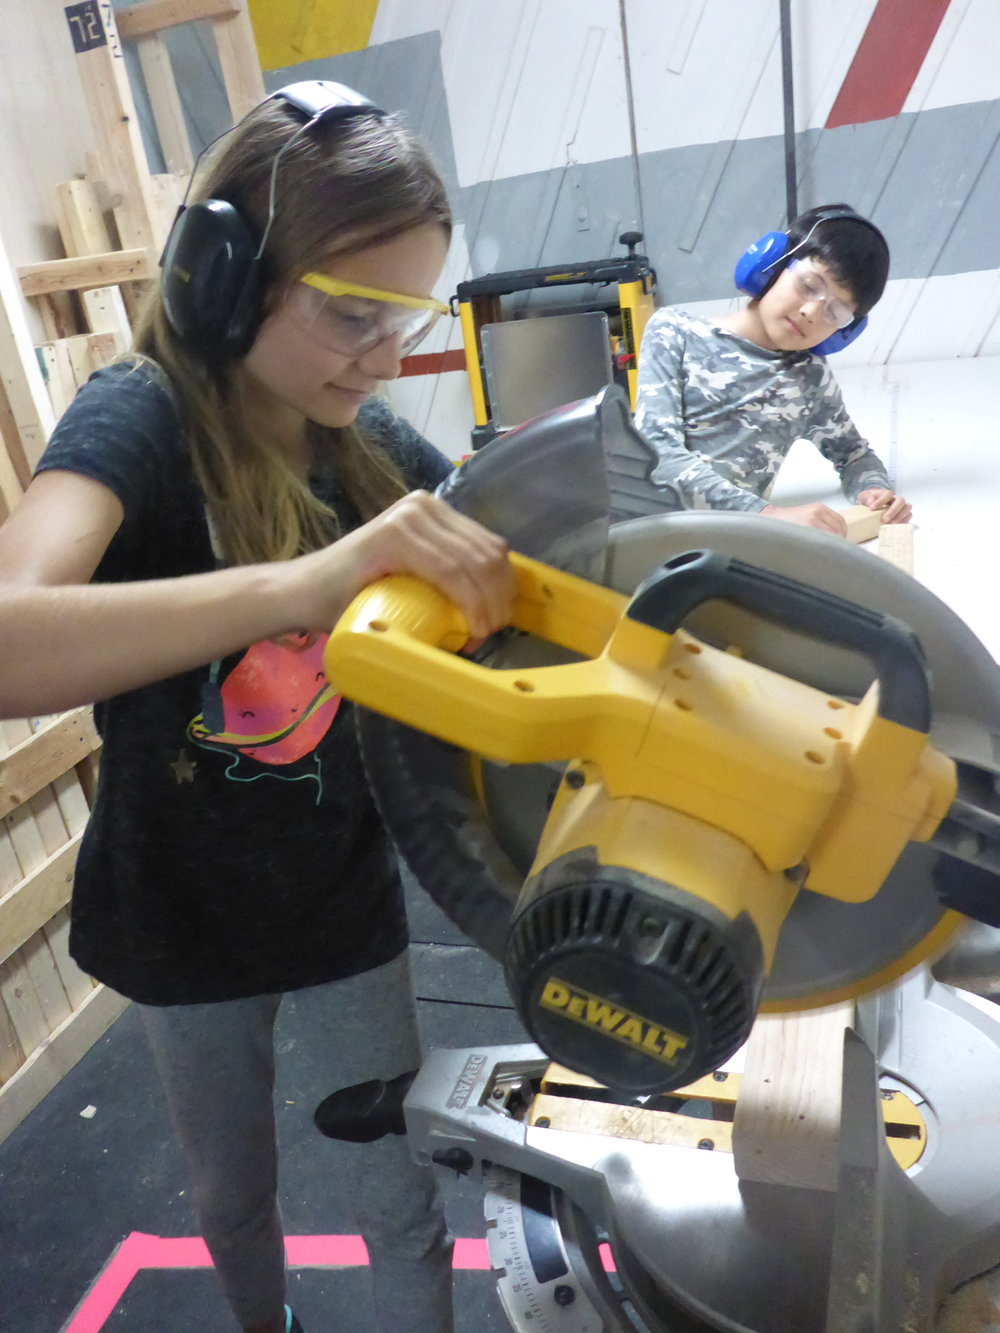 Sophie displays excellent form while using the chop saw.  everyone got a chance to try it out today after learning some finger-saving safety tips.